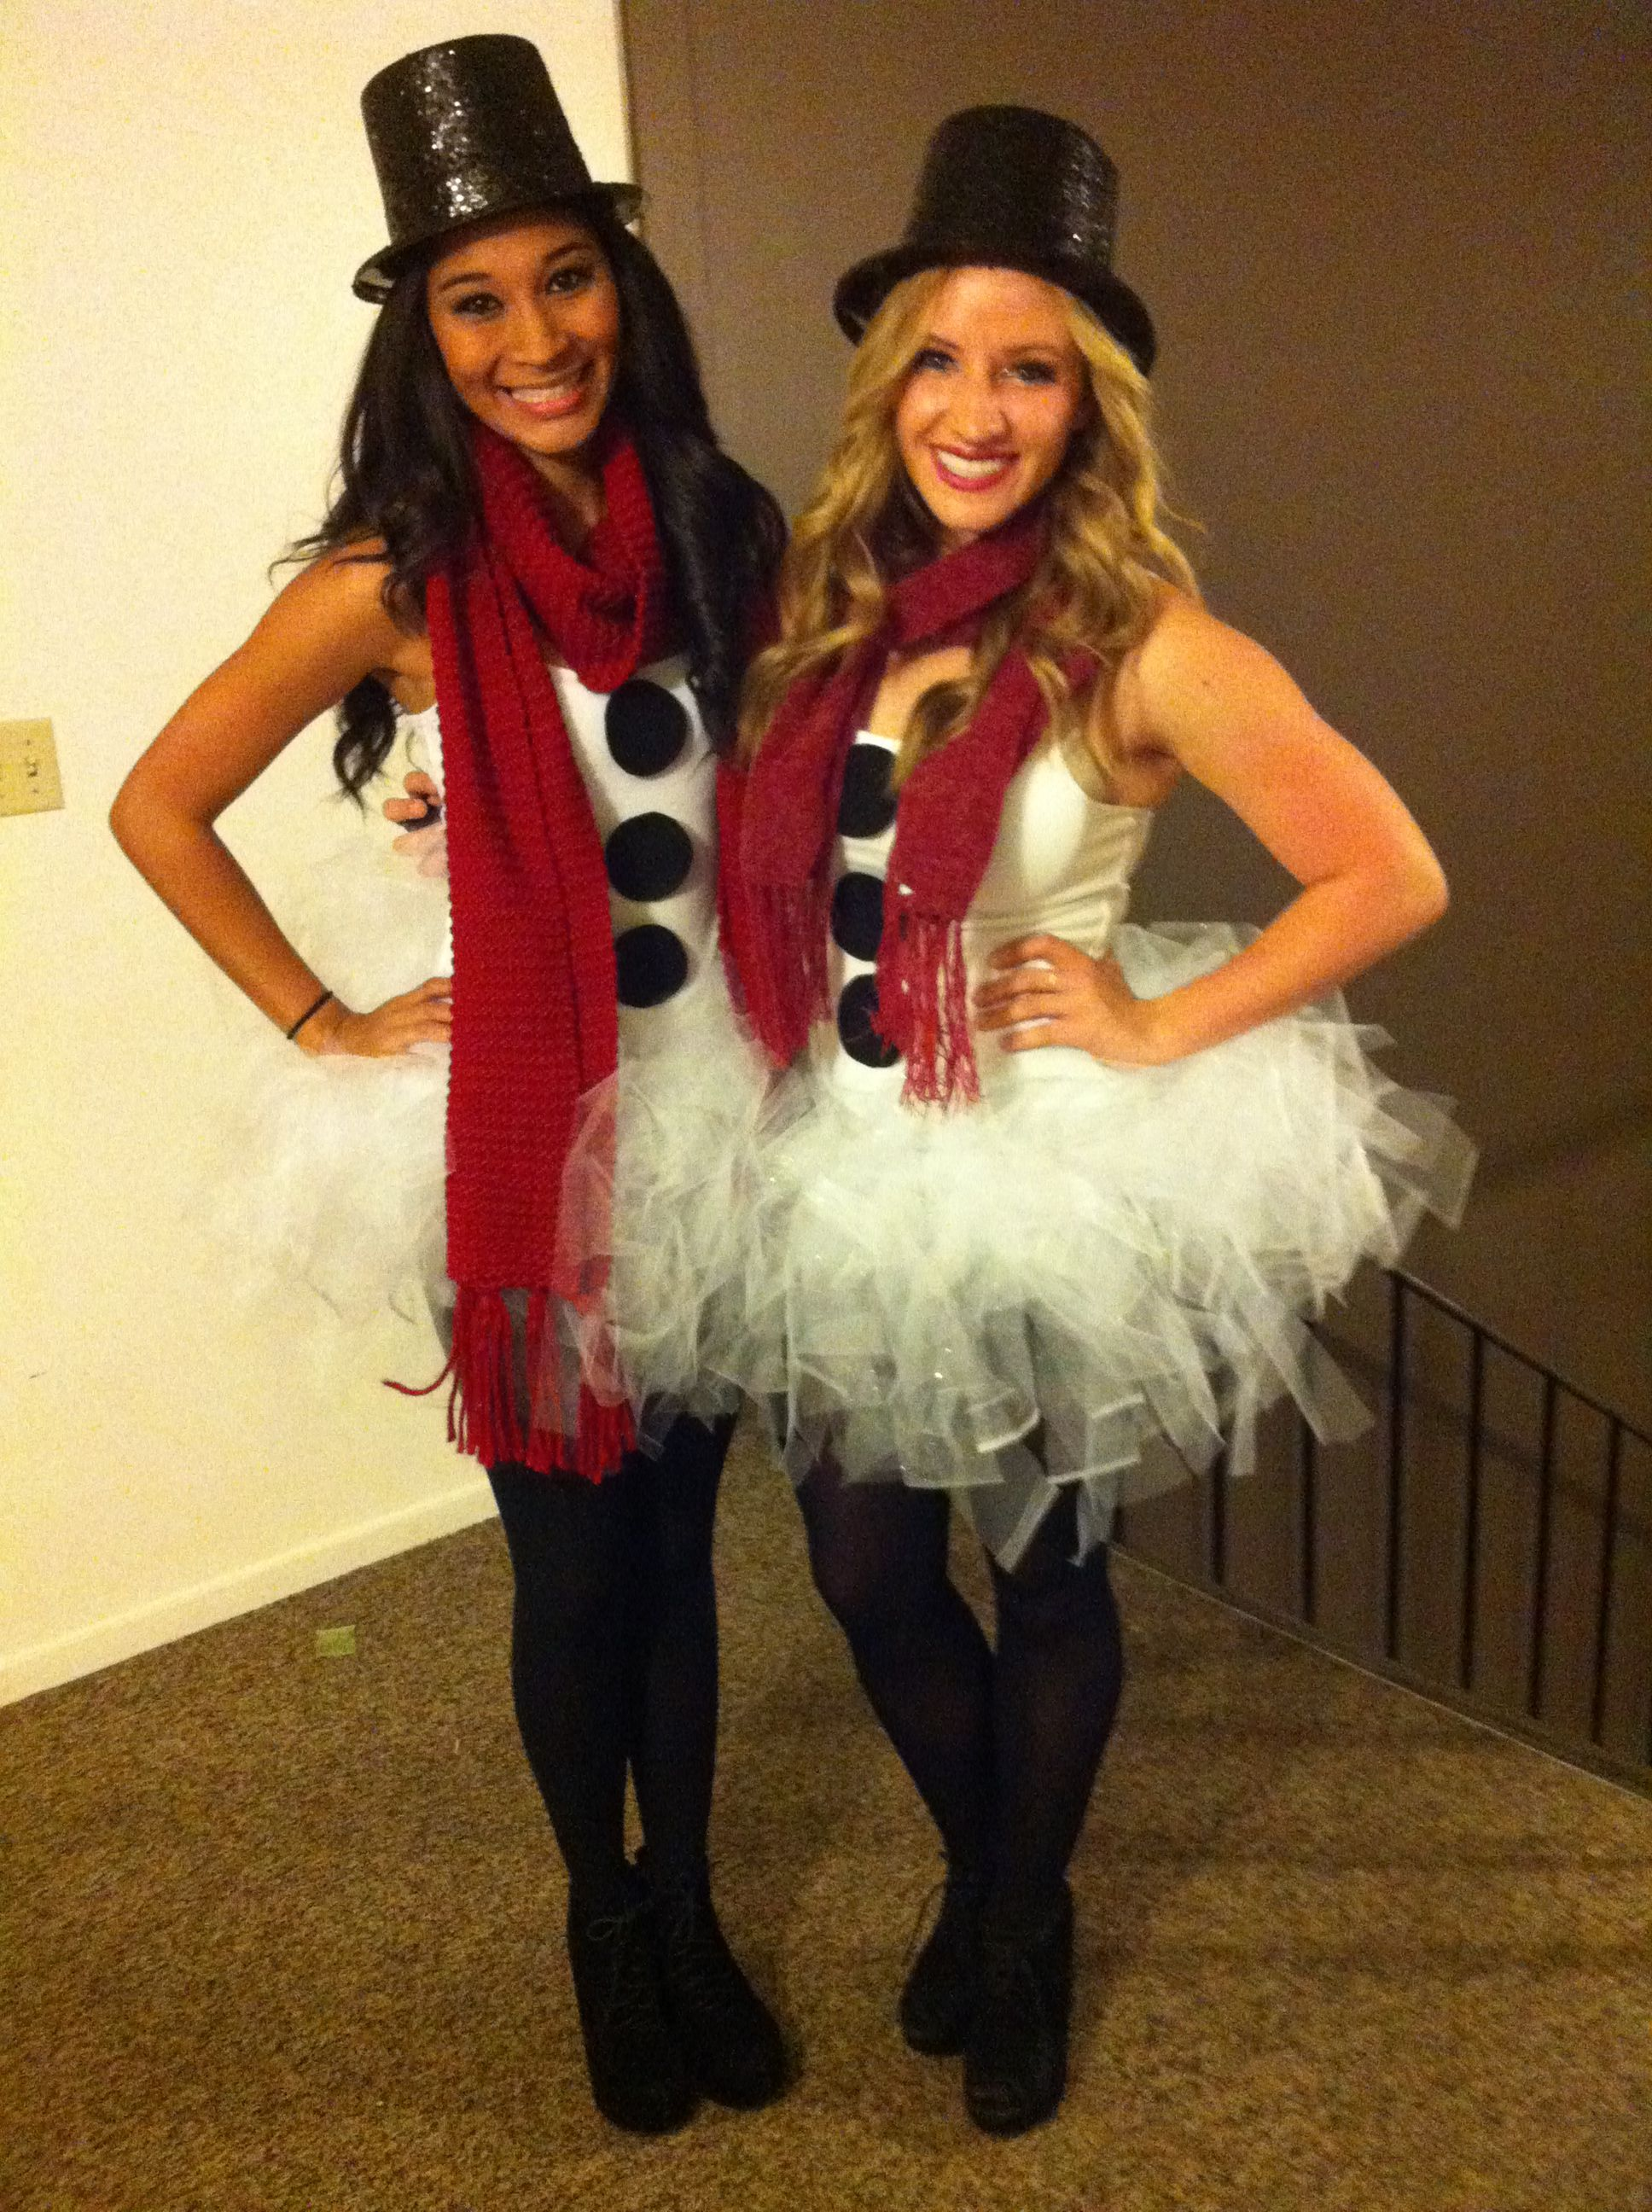 Christmas Carnival Theme Outfit.Last Minute Halloween Costumes Halloween Group Halloween